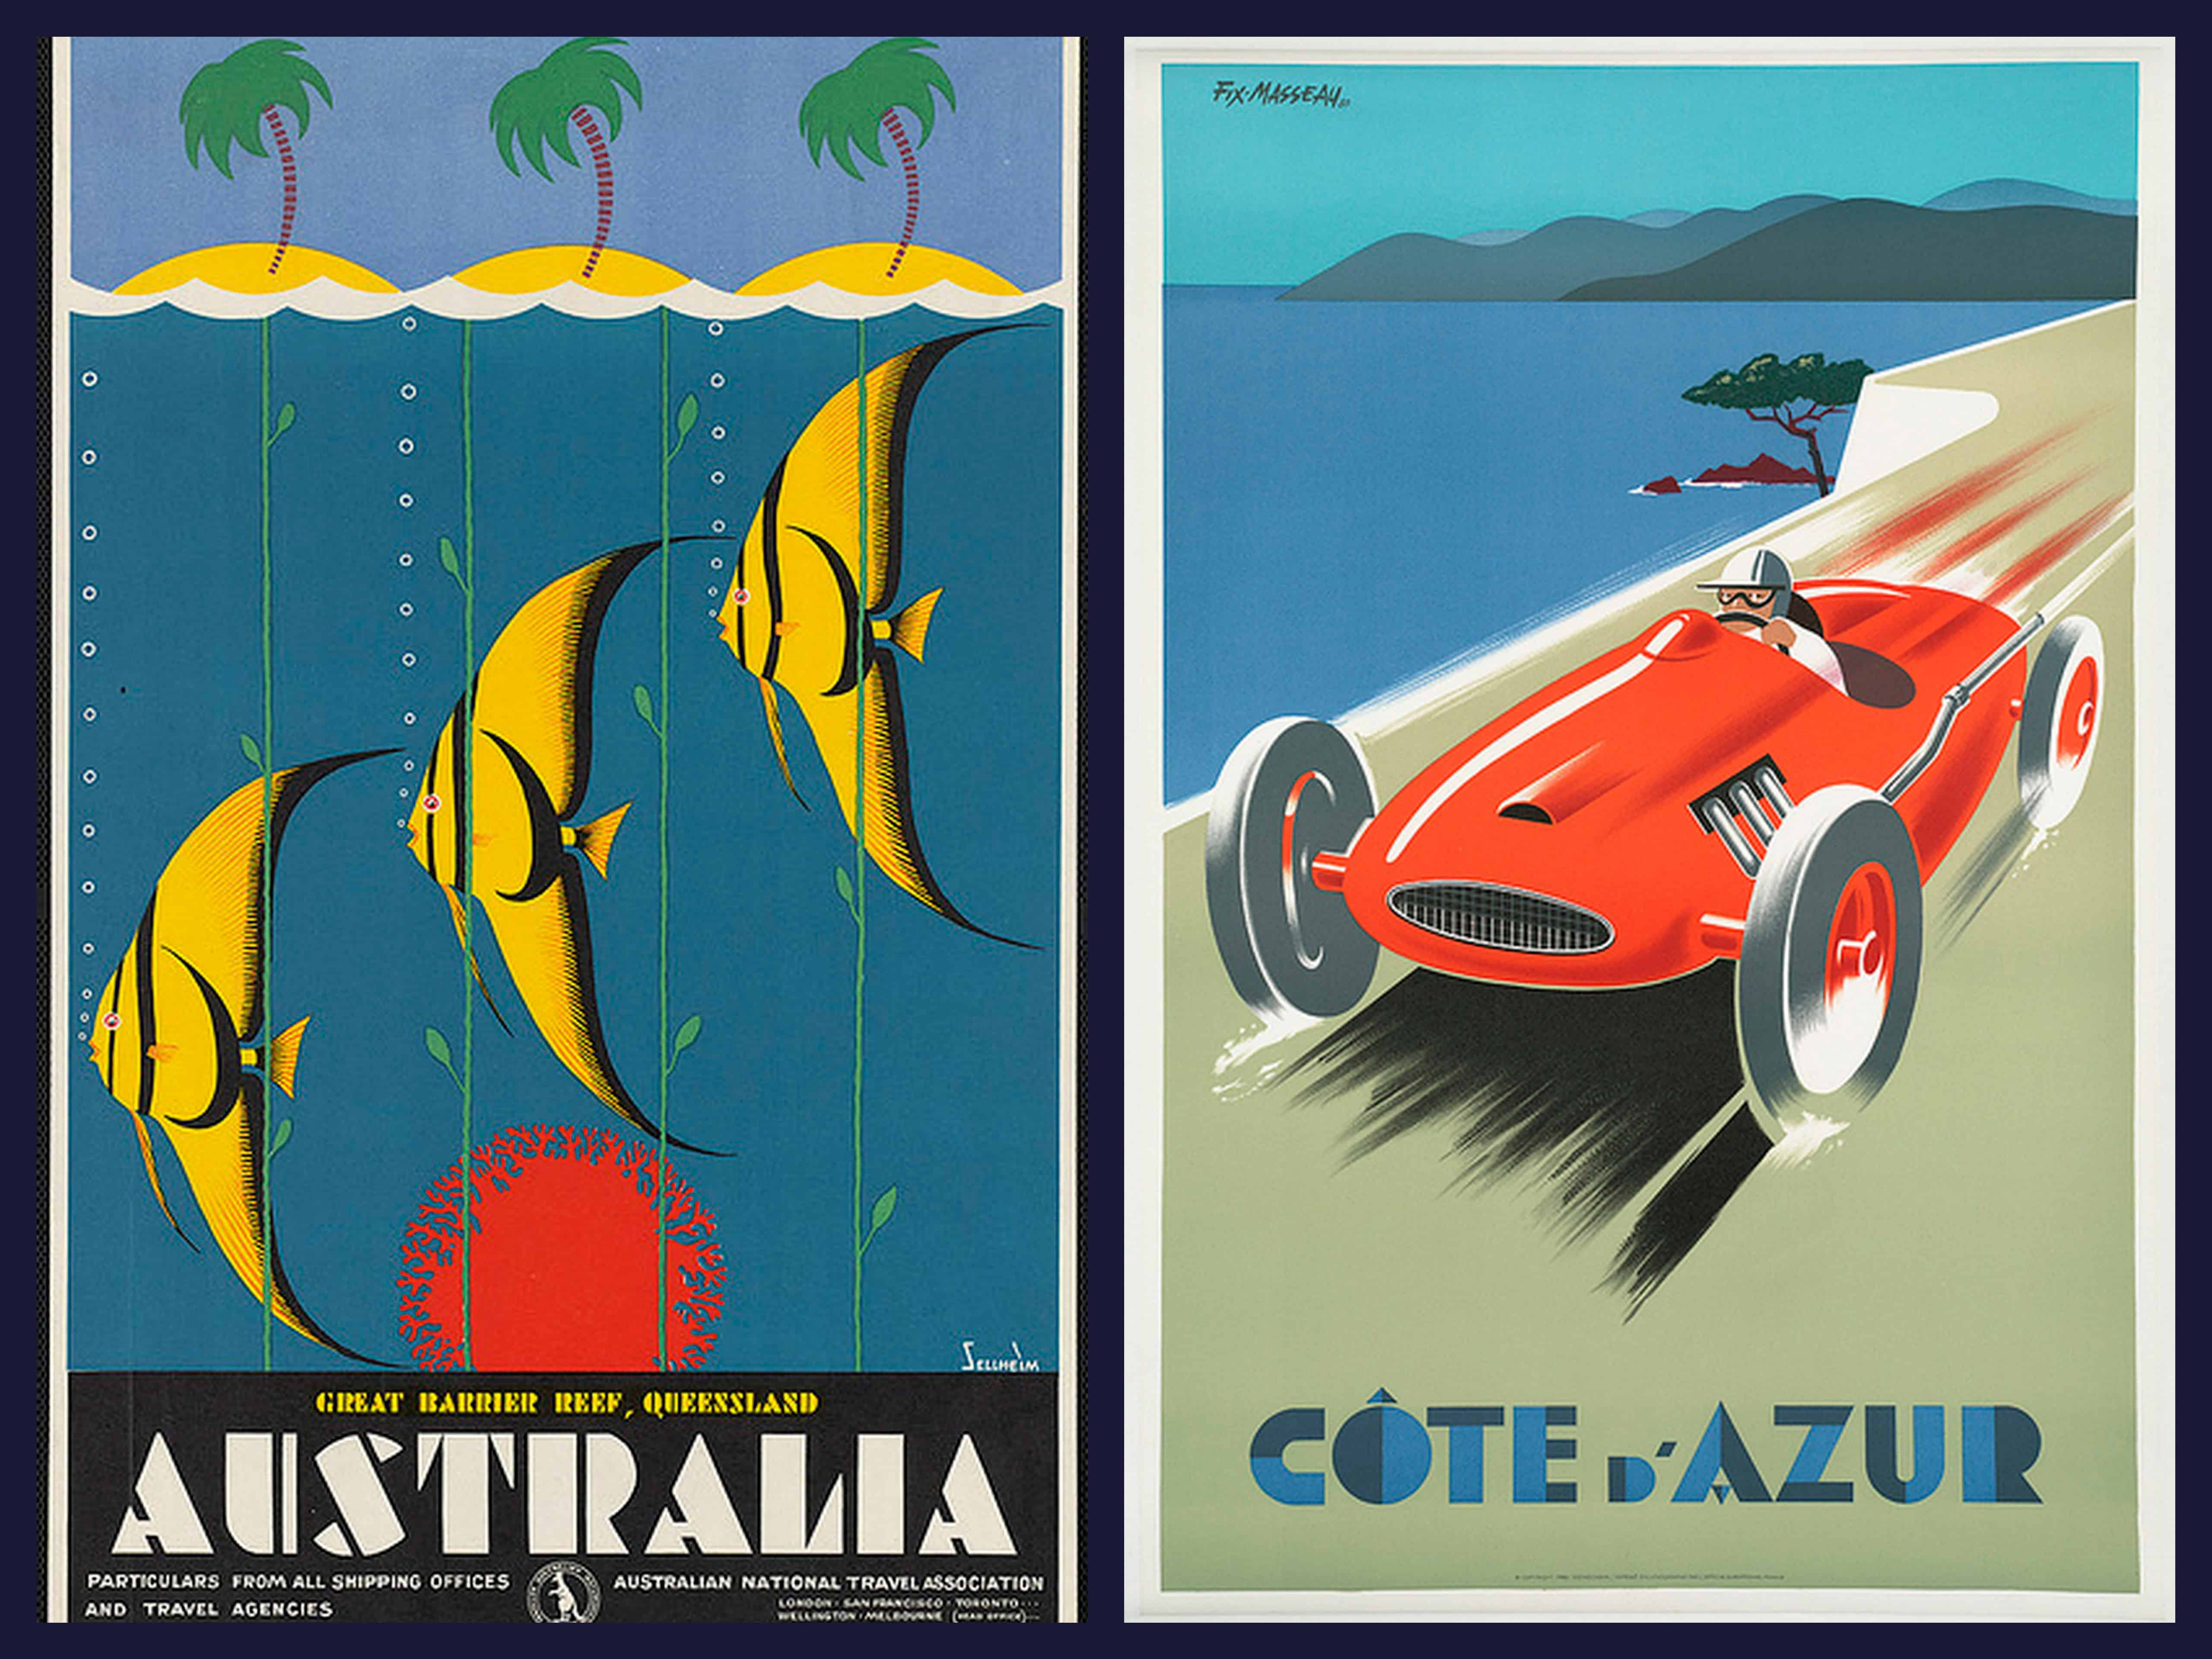 Vintage Travel Posters From The Art Deco Era Interiors Inside Ideas Interiors design about Everything [magnanprojects.com]